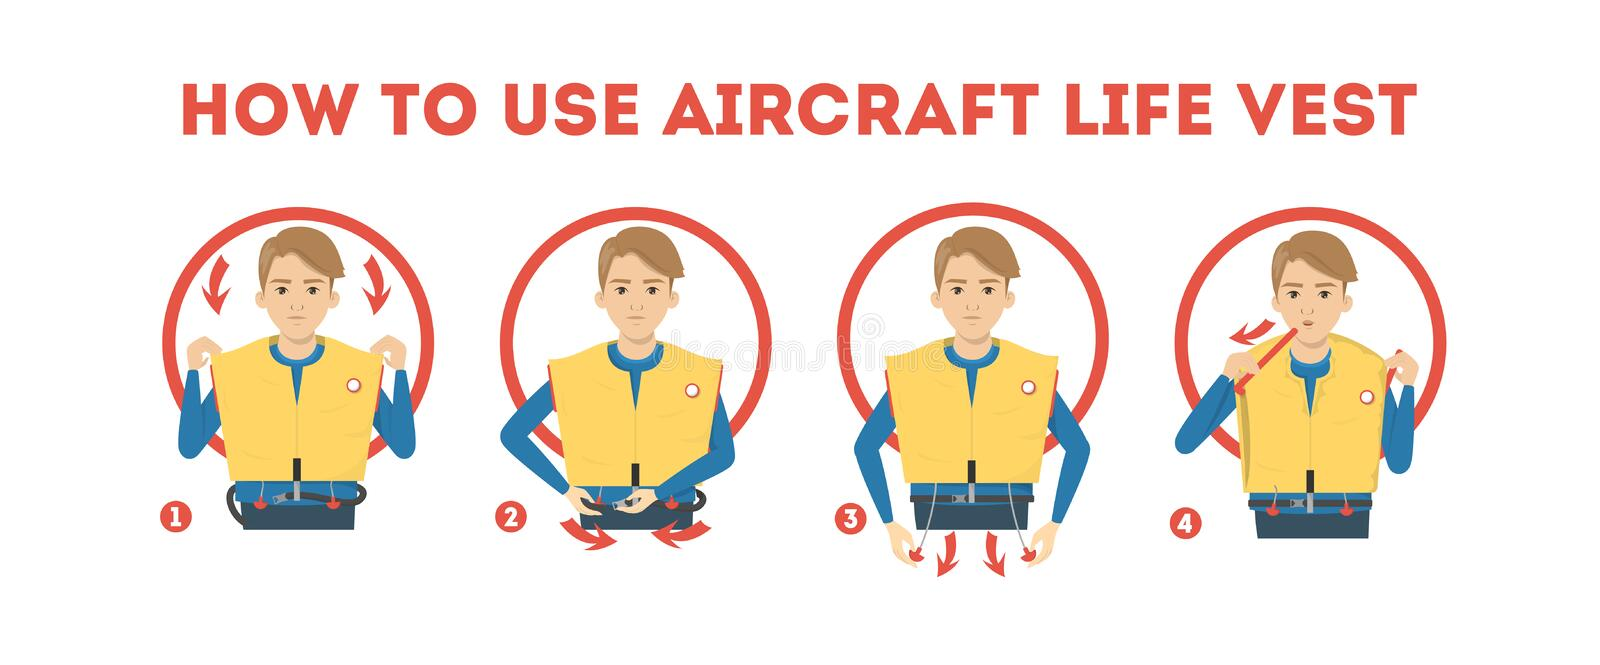 How to use airplane life jacket instruction. Demonstration vector illustration